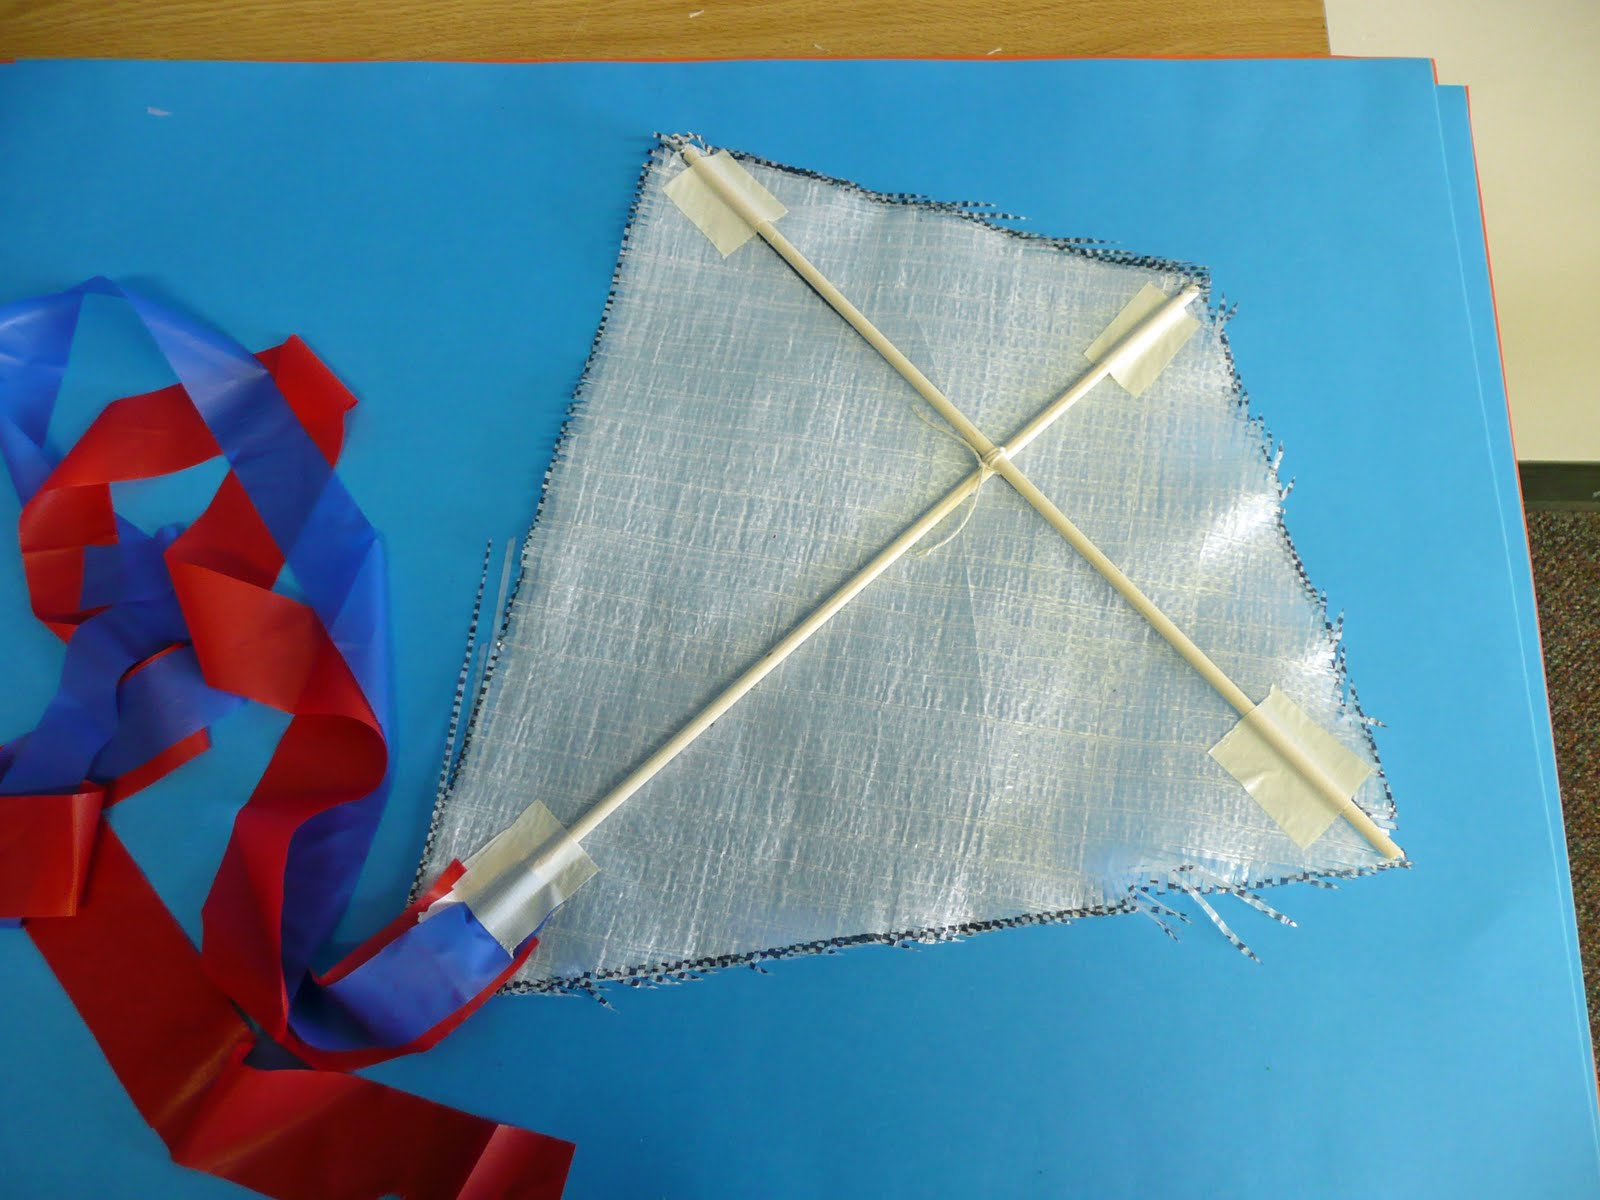 Kite shape in real life